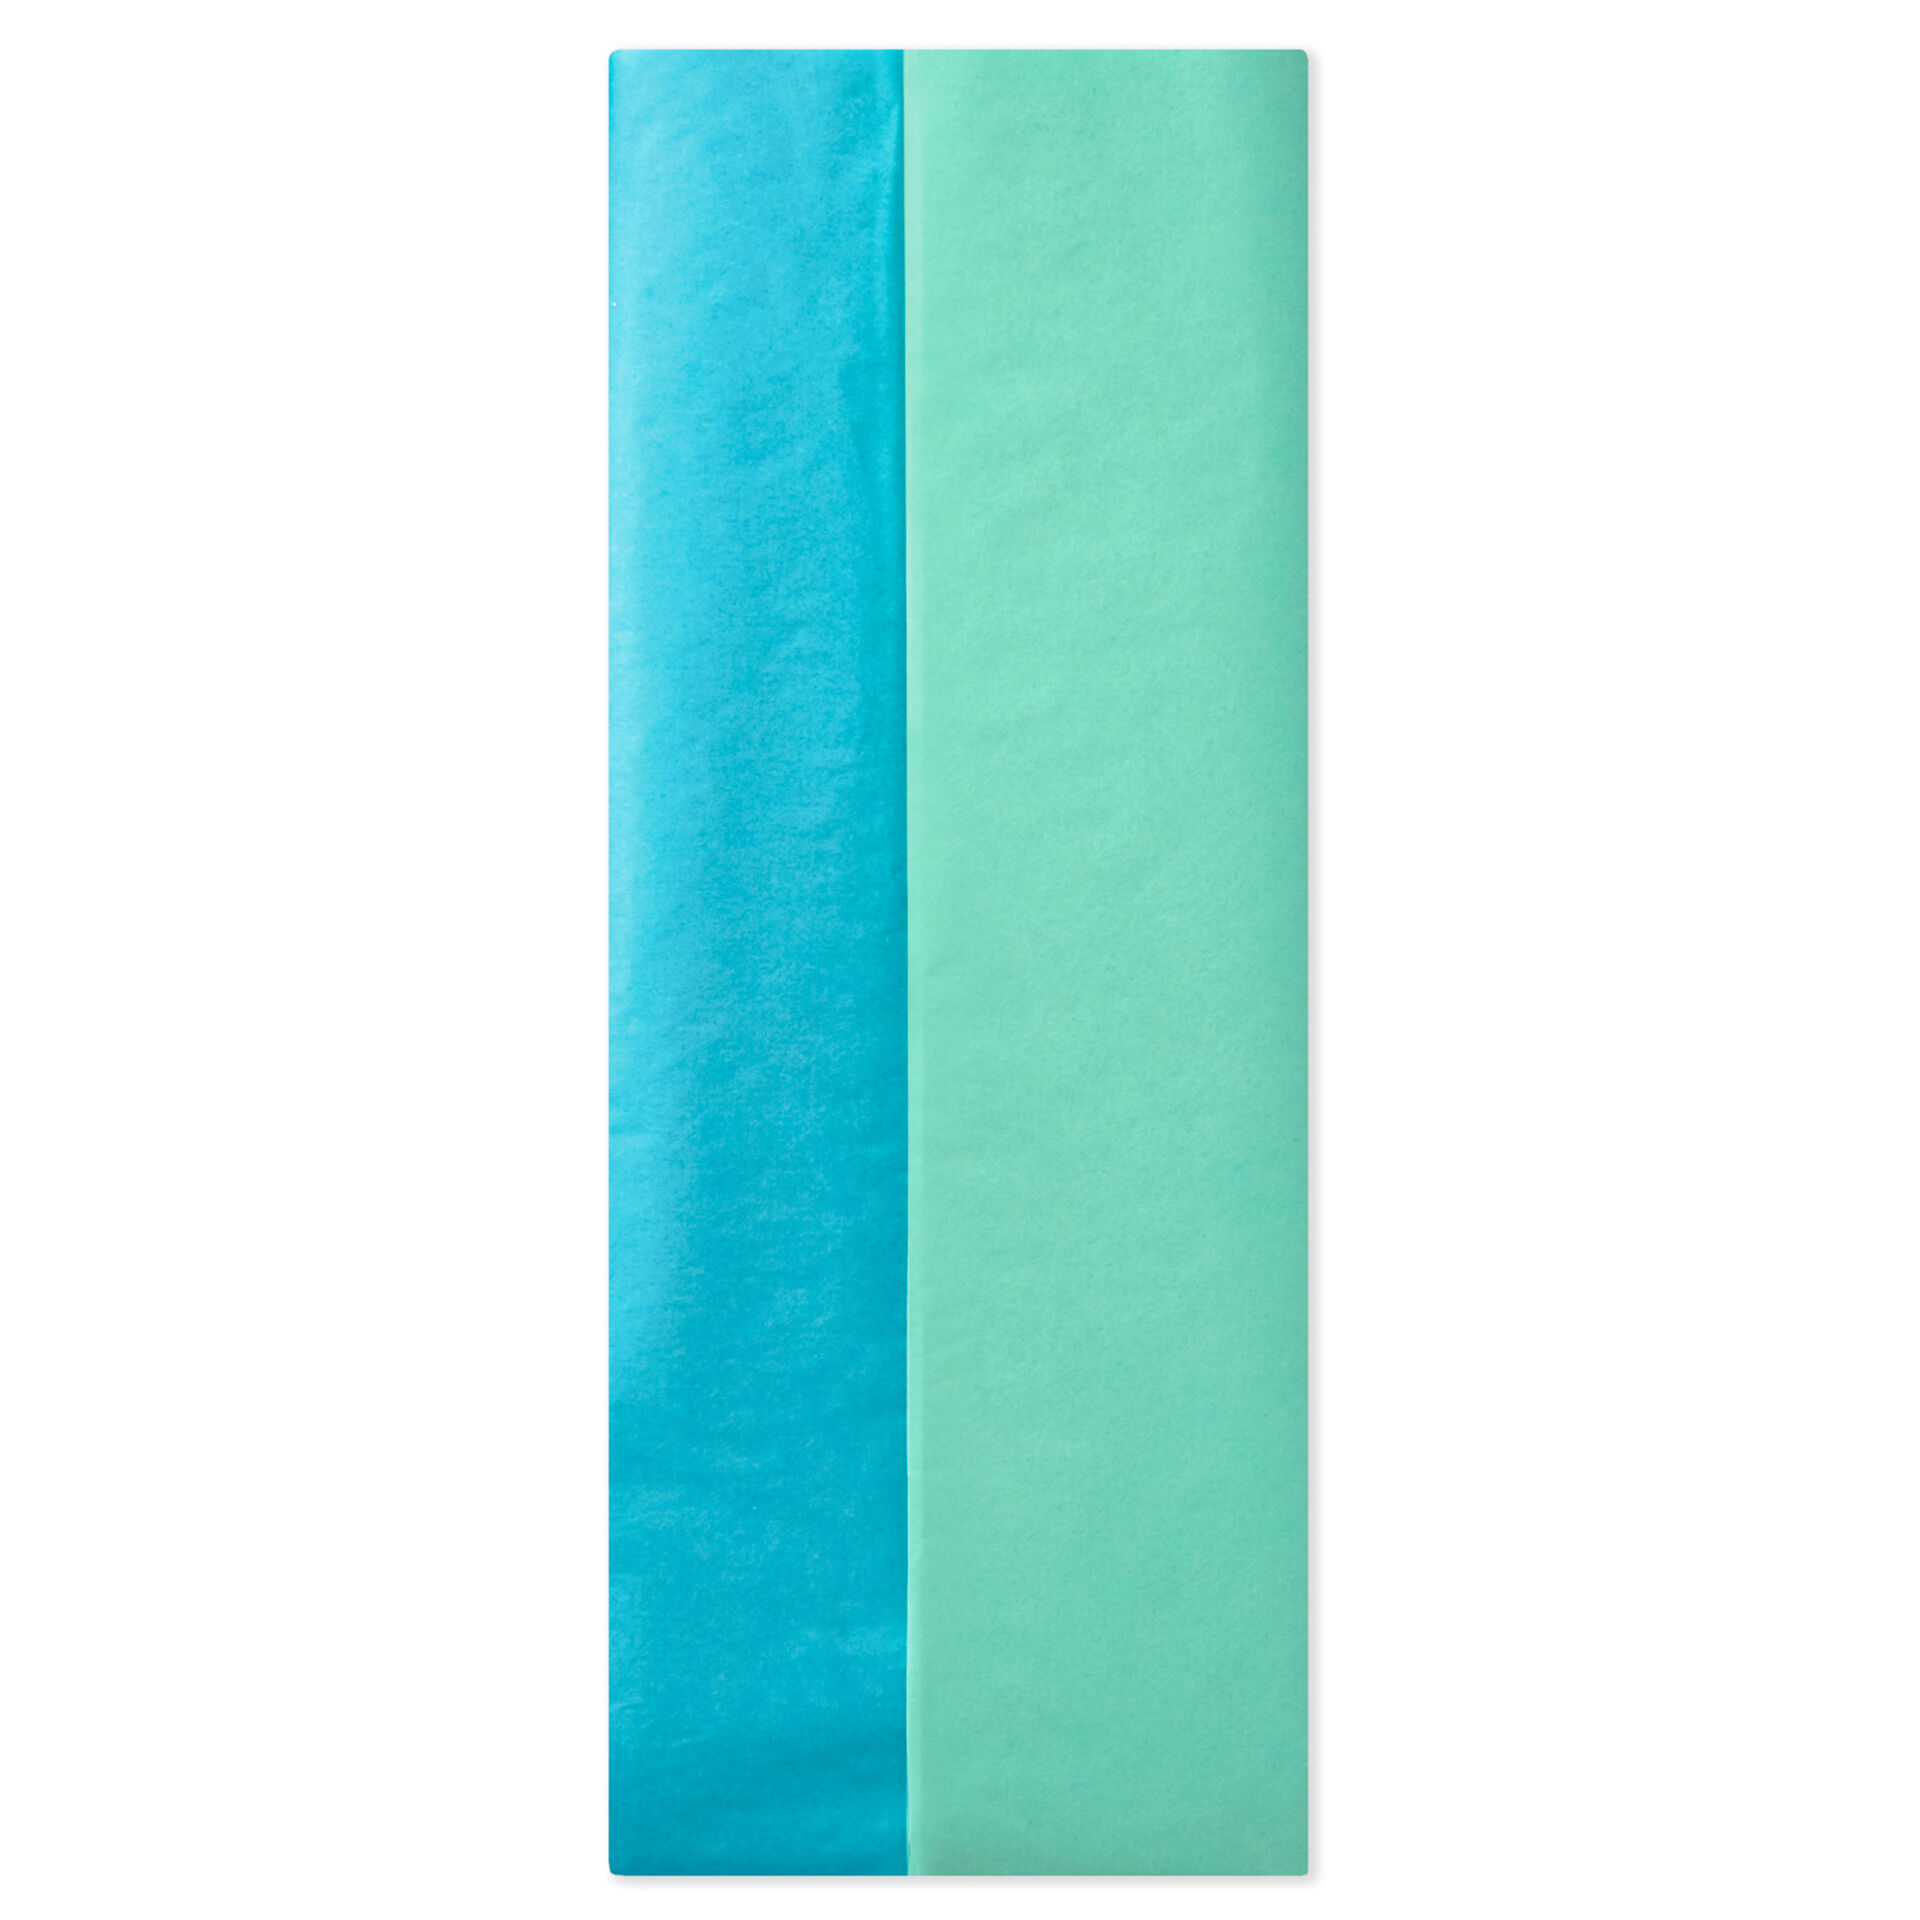 NAVY TISSUE PAPER SATIN WRAP PEACH TURQUOISE PINK GREEN BLUE MINT CORAL